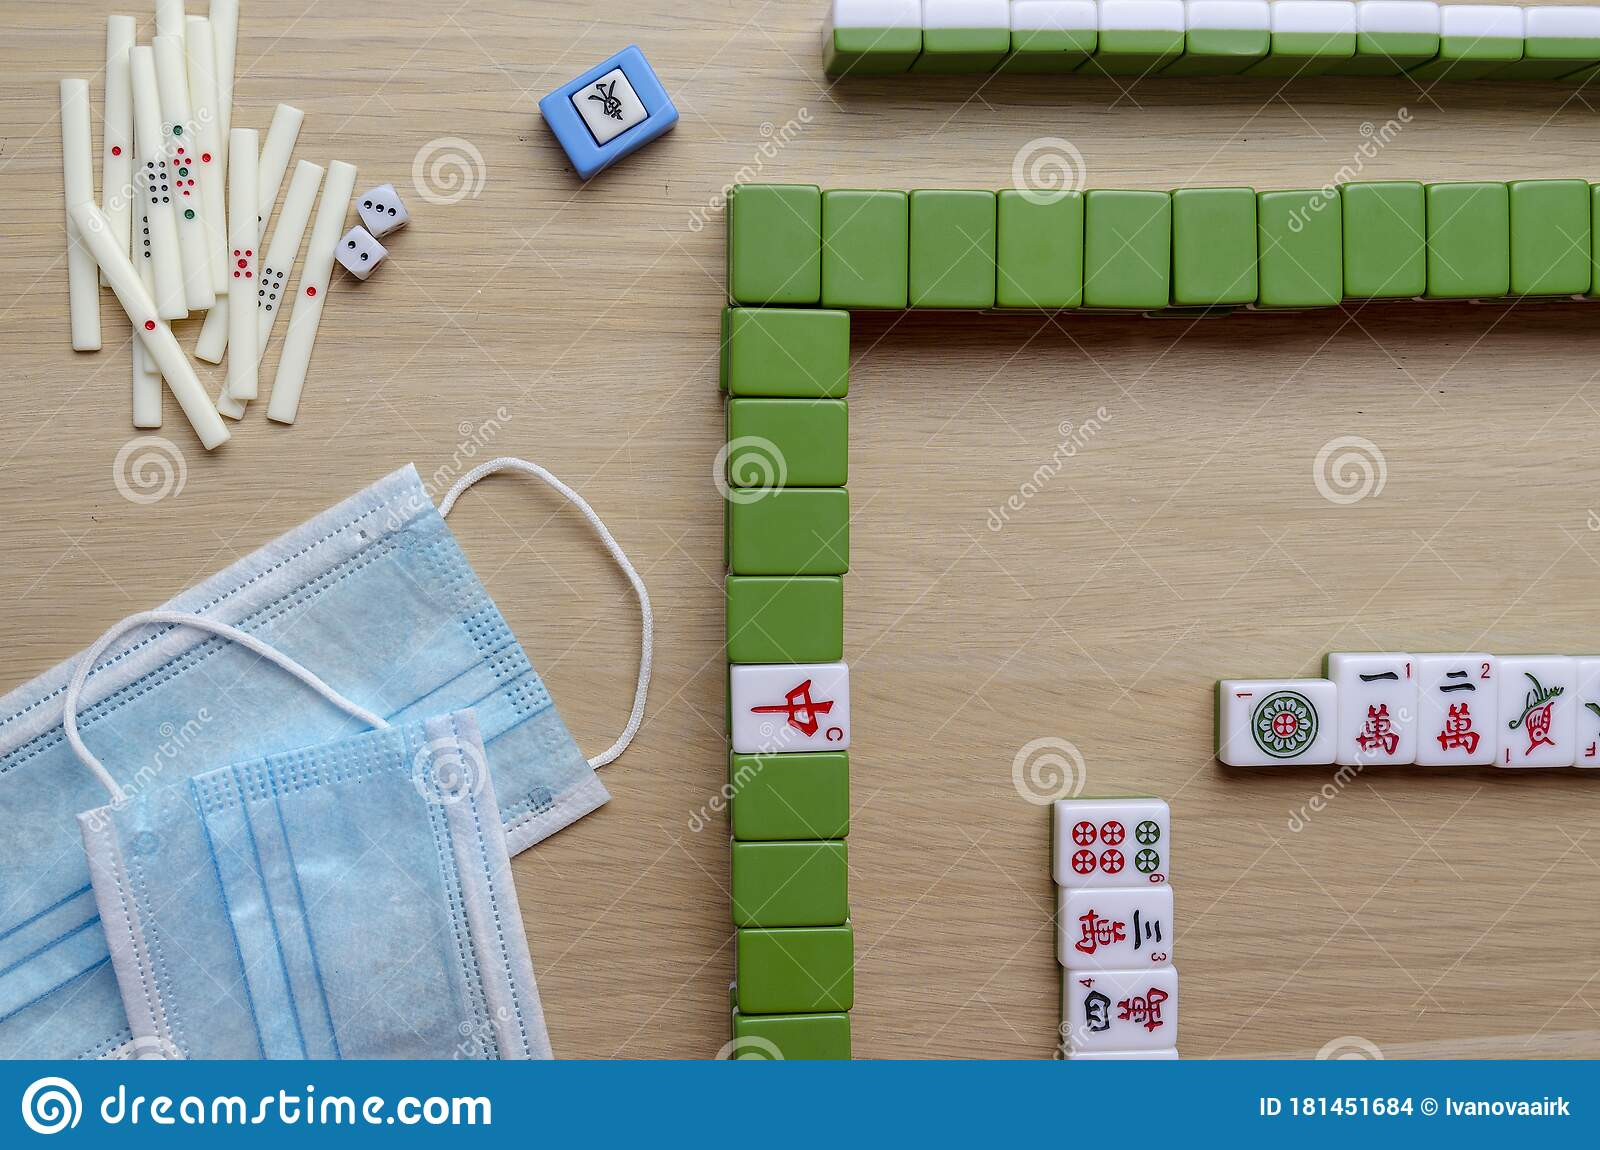 Mahjong Table Game On Of Chinese City Street Or Japaneese Riichi Mahjong Quarantine And Home Boards Games Stock Photo Image Of Epidemic Child 181451684,Pet Snakes For Kids